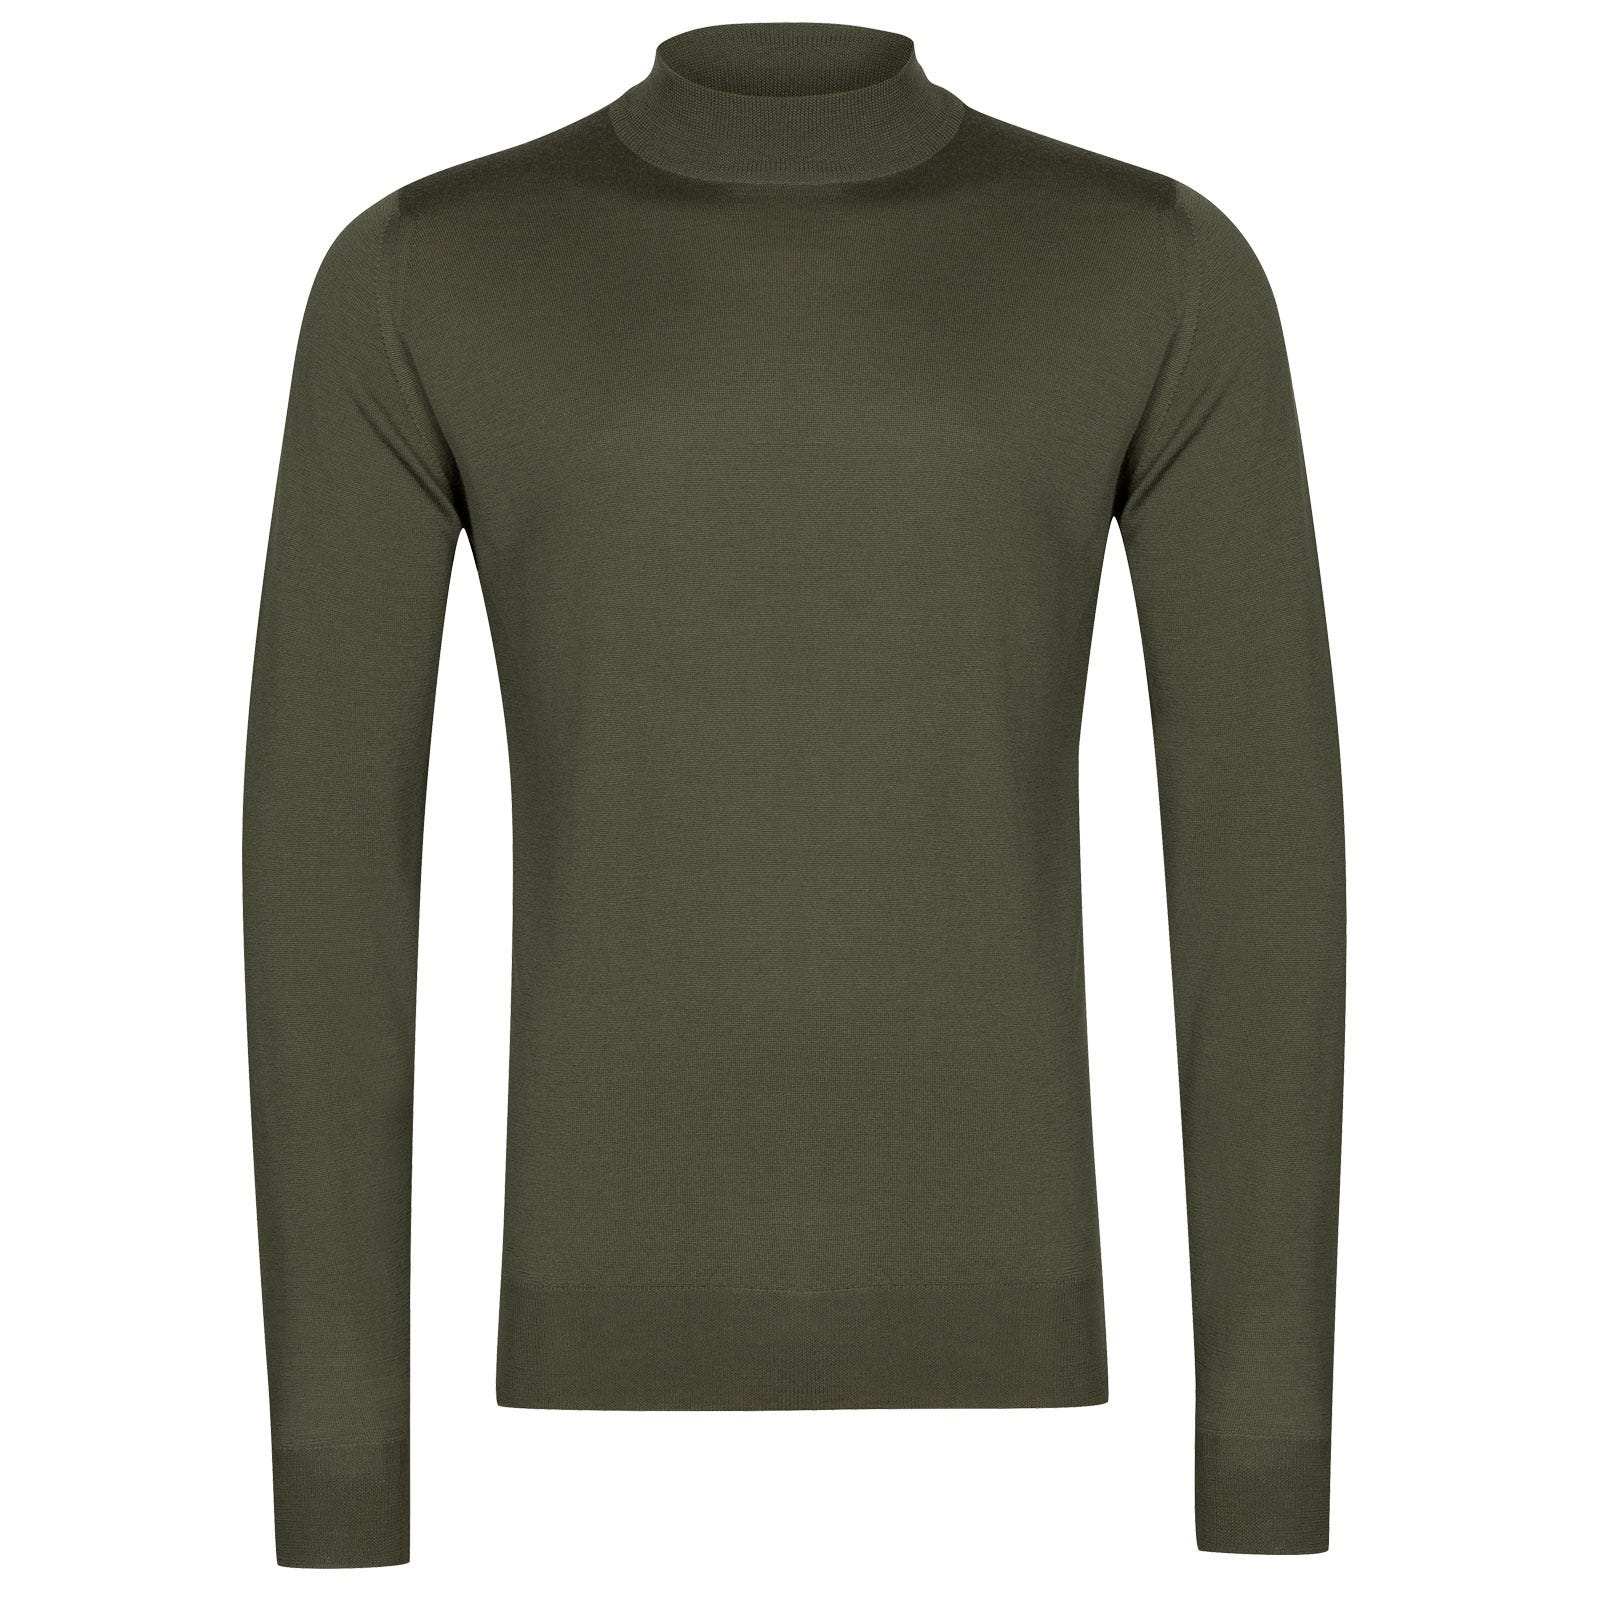 John Smedley Harcourt in Sepal Green Pullover-XLG